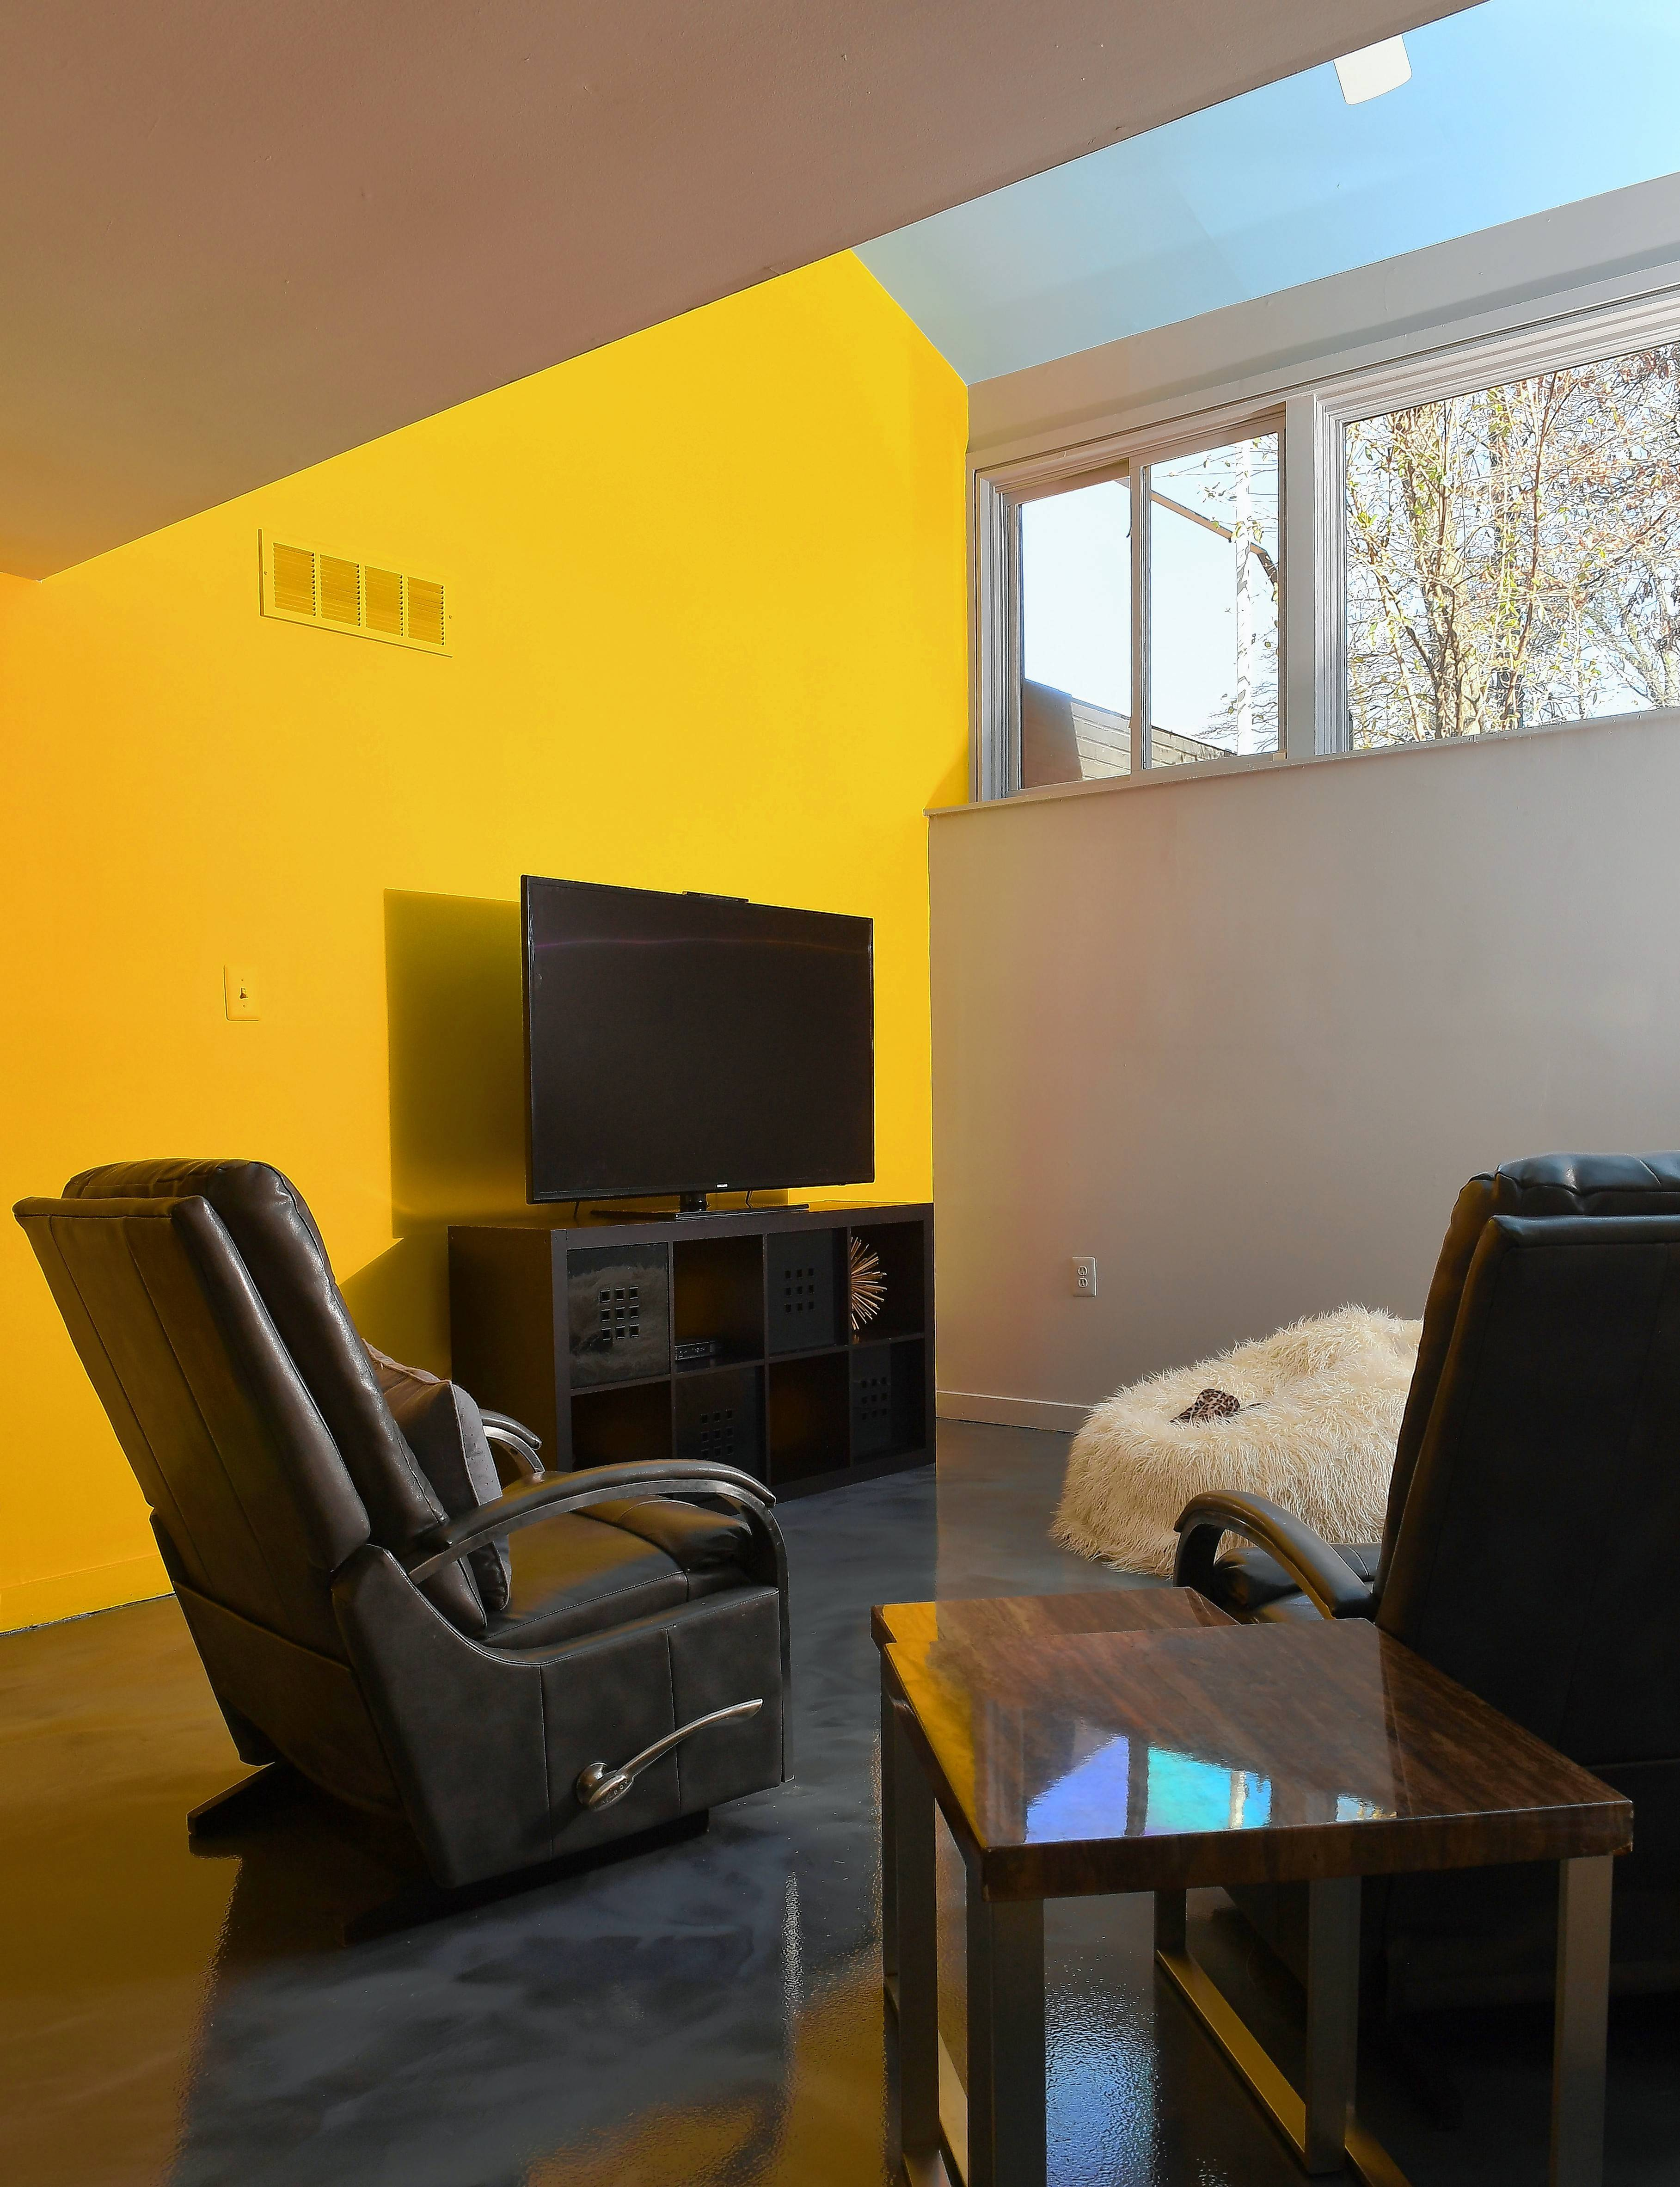 The Colemans' basement has a yellow accent wall, pale blue ceiling and gray walls.